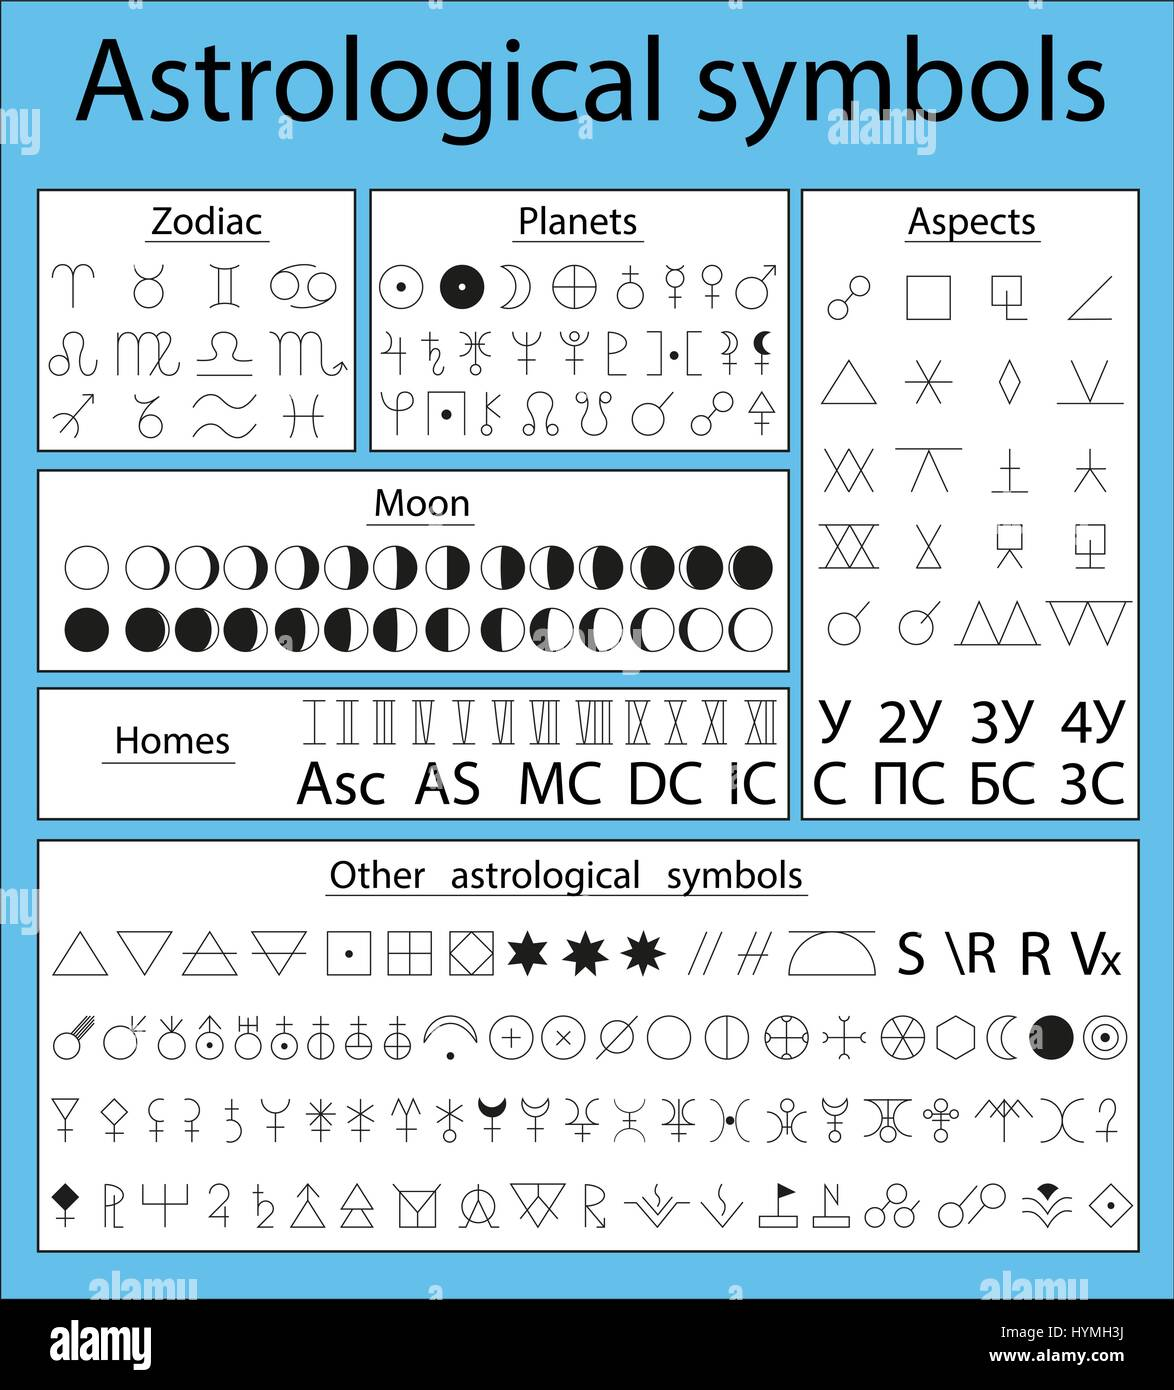 Astrological Symbols Planets Zodiac Aspects Stock Photos